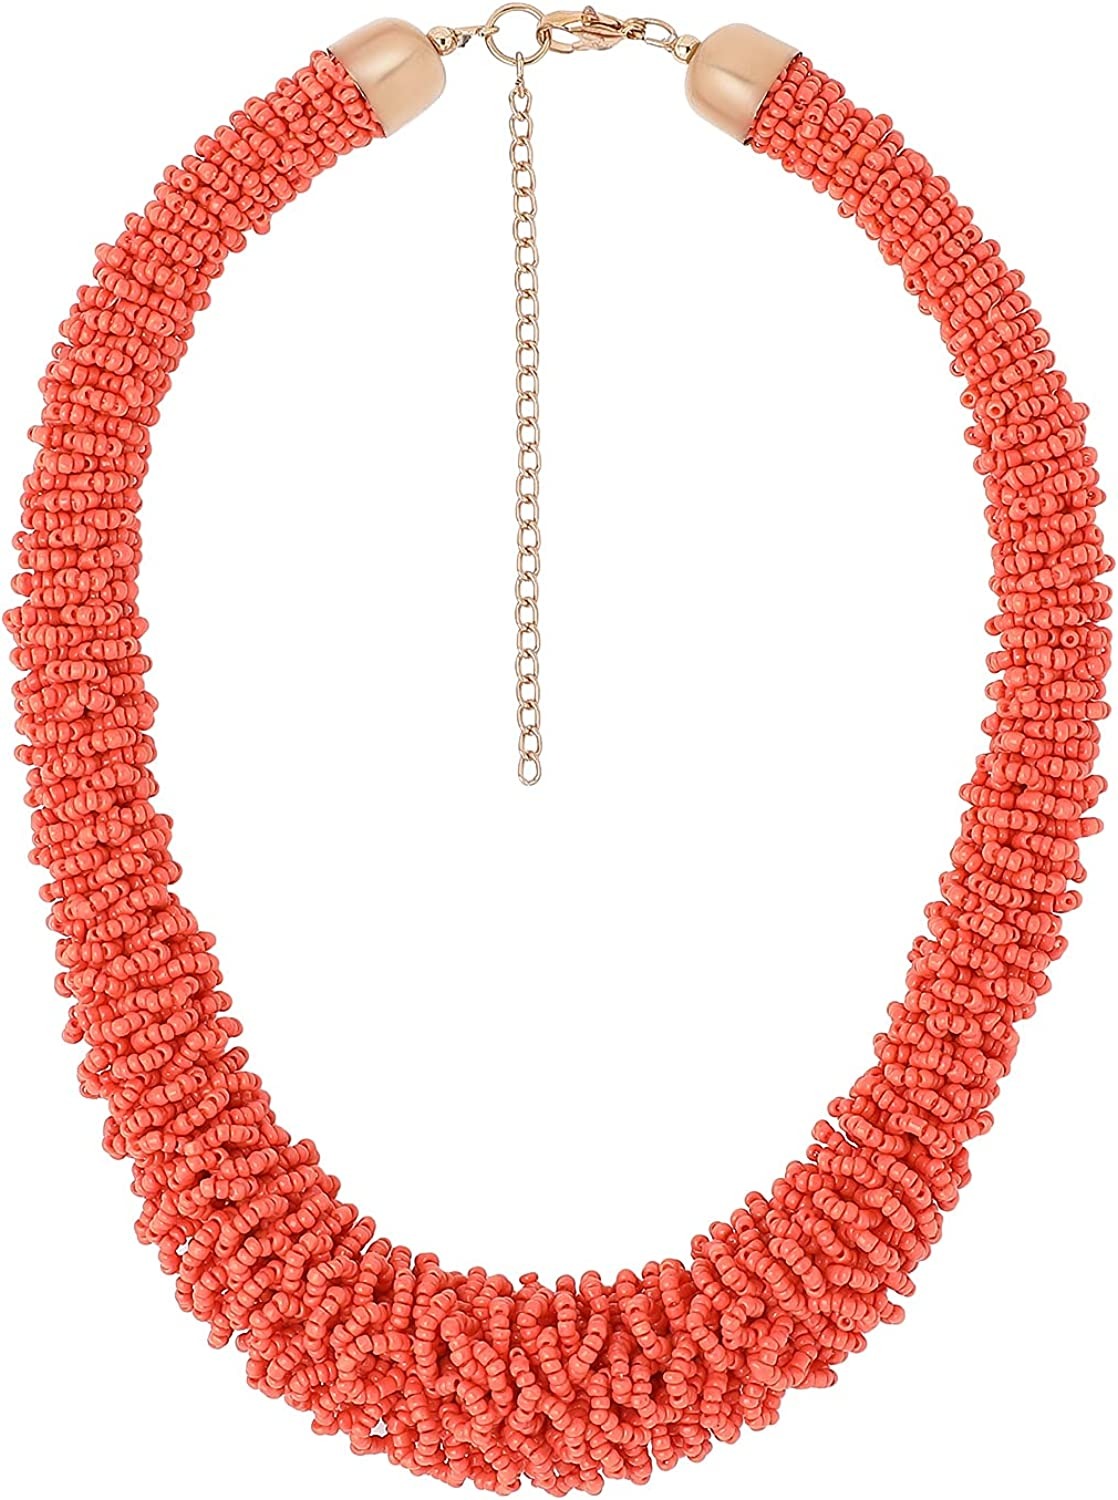 RF Rizir Fashion Long Handmade Boho Necklaces for Women - Statement Necklace - Seed Bead Necklaces for Girls and Women